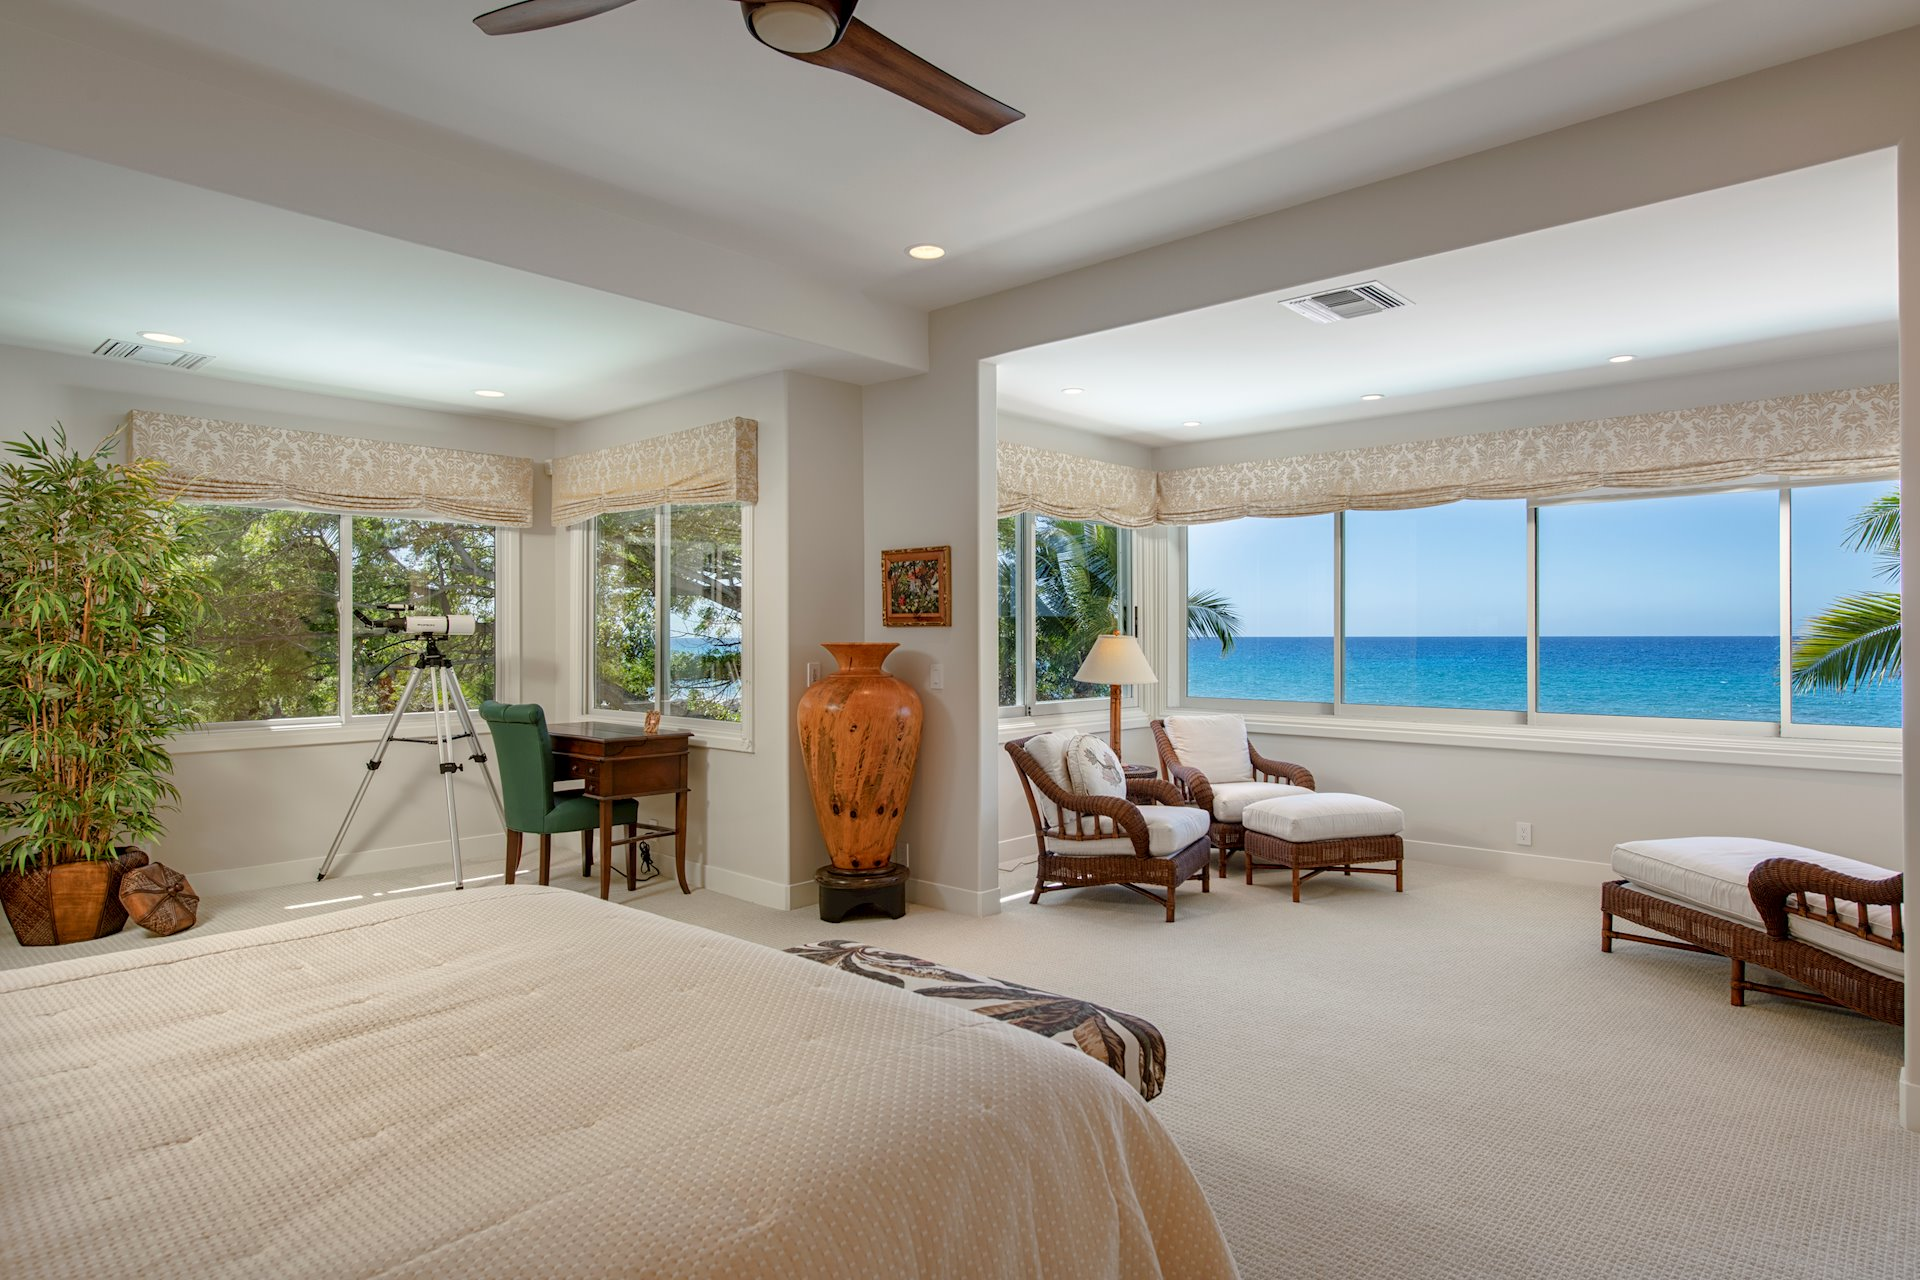 AMAZING VIEWS FROM MASTER AND JUNIOR MASTER SUITES